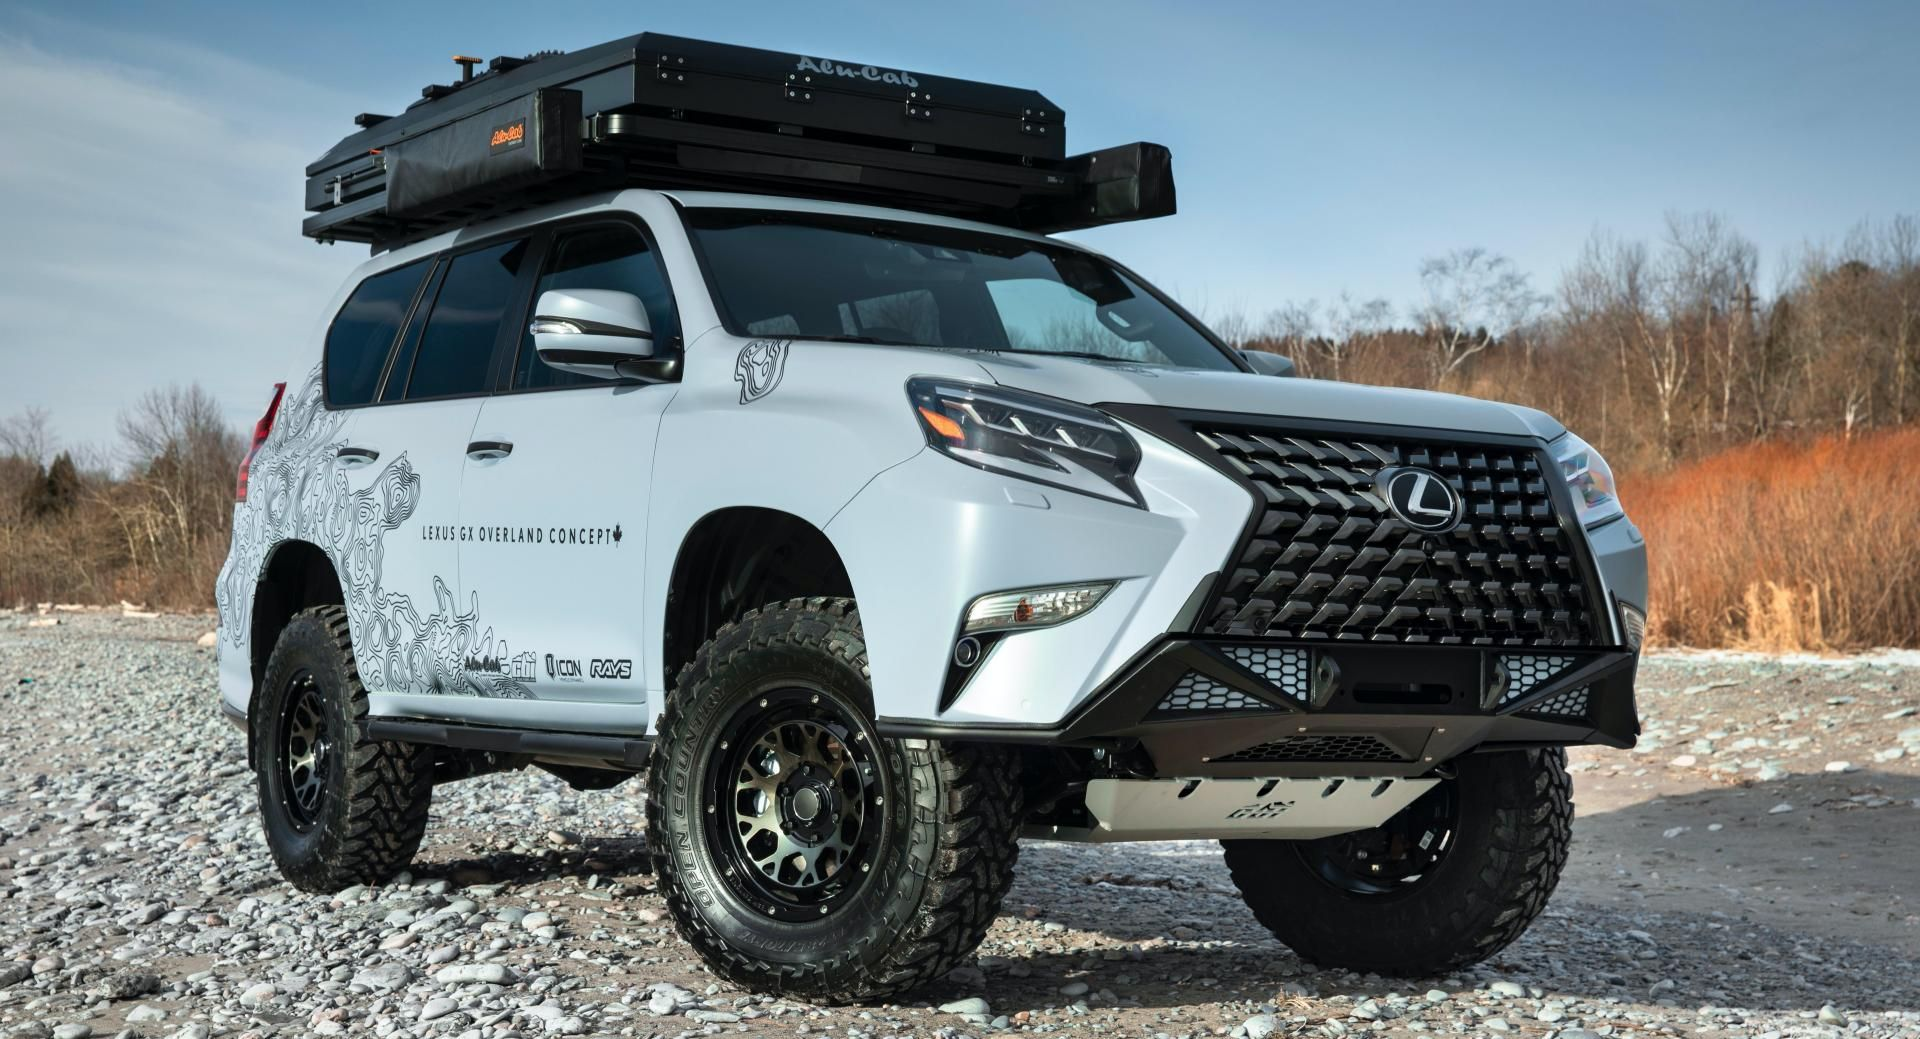 New Lexus Gx Overland Concept Is The Perfect Suv To Take You Off Grid Carscoops In 2020 Lexus Gx Lexus Gx 460 New Lexus